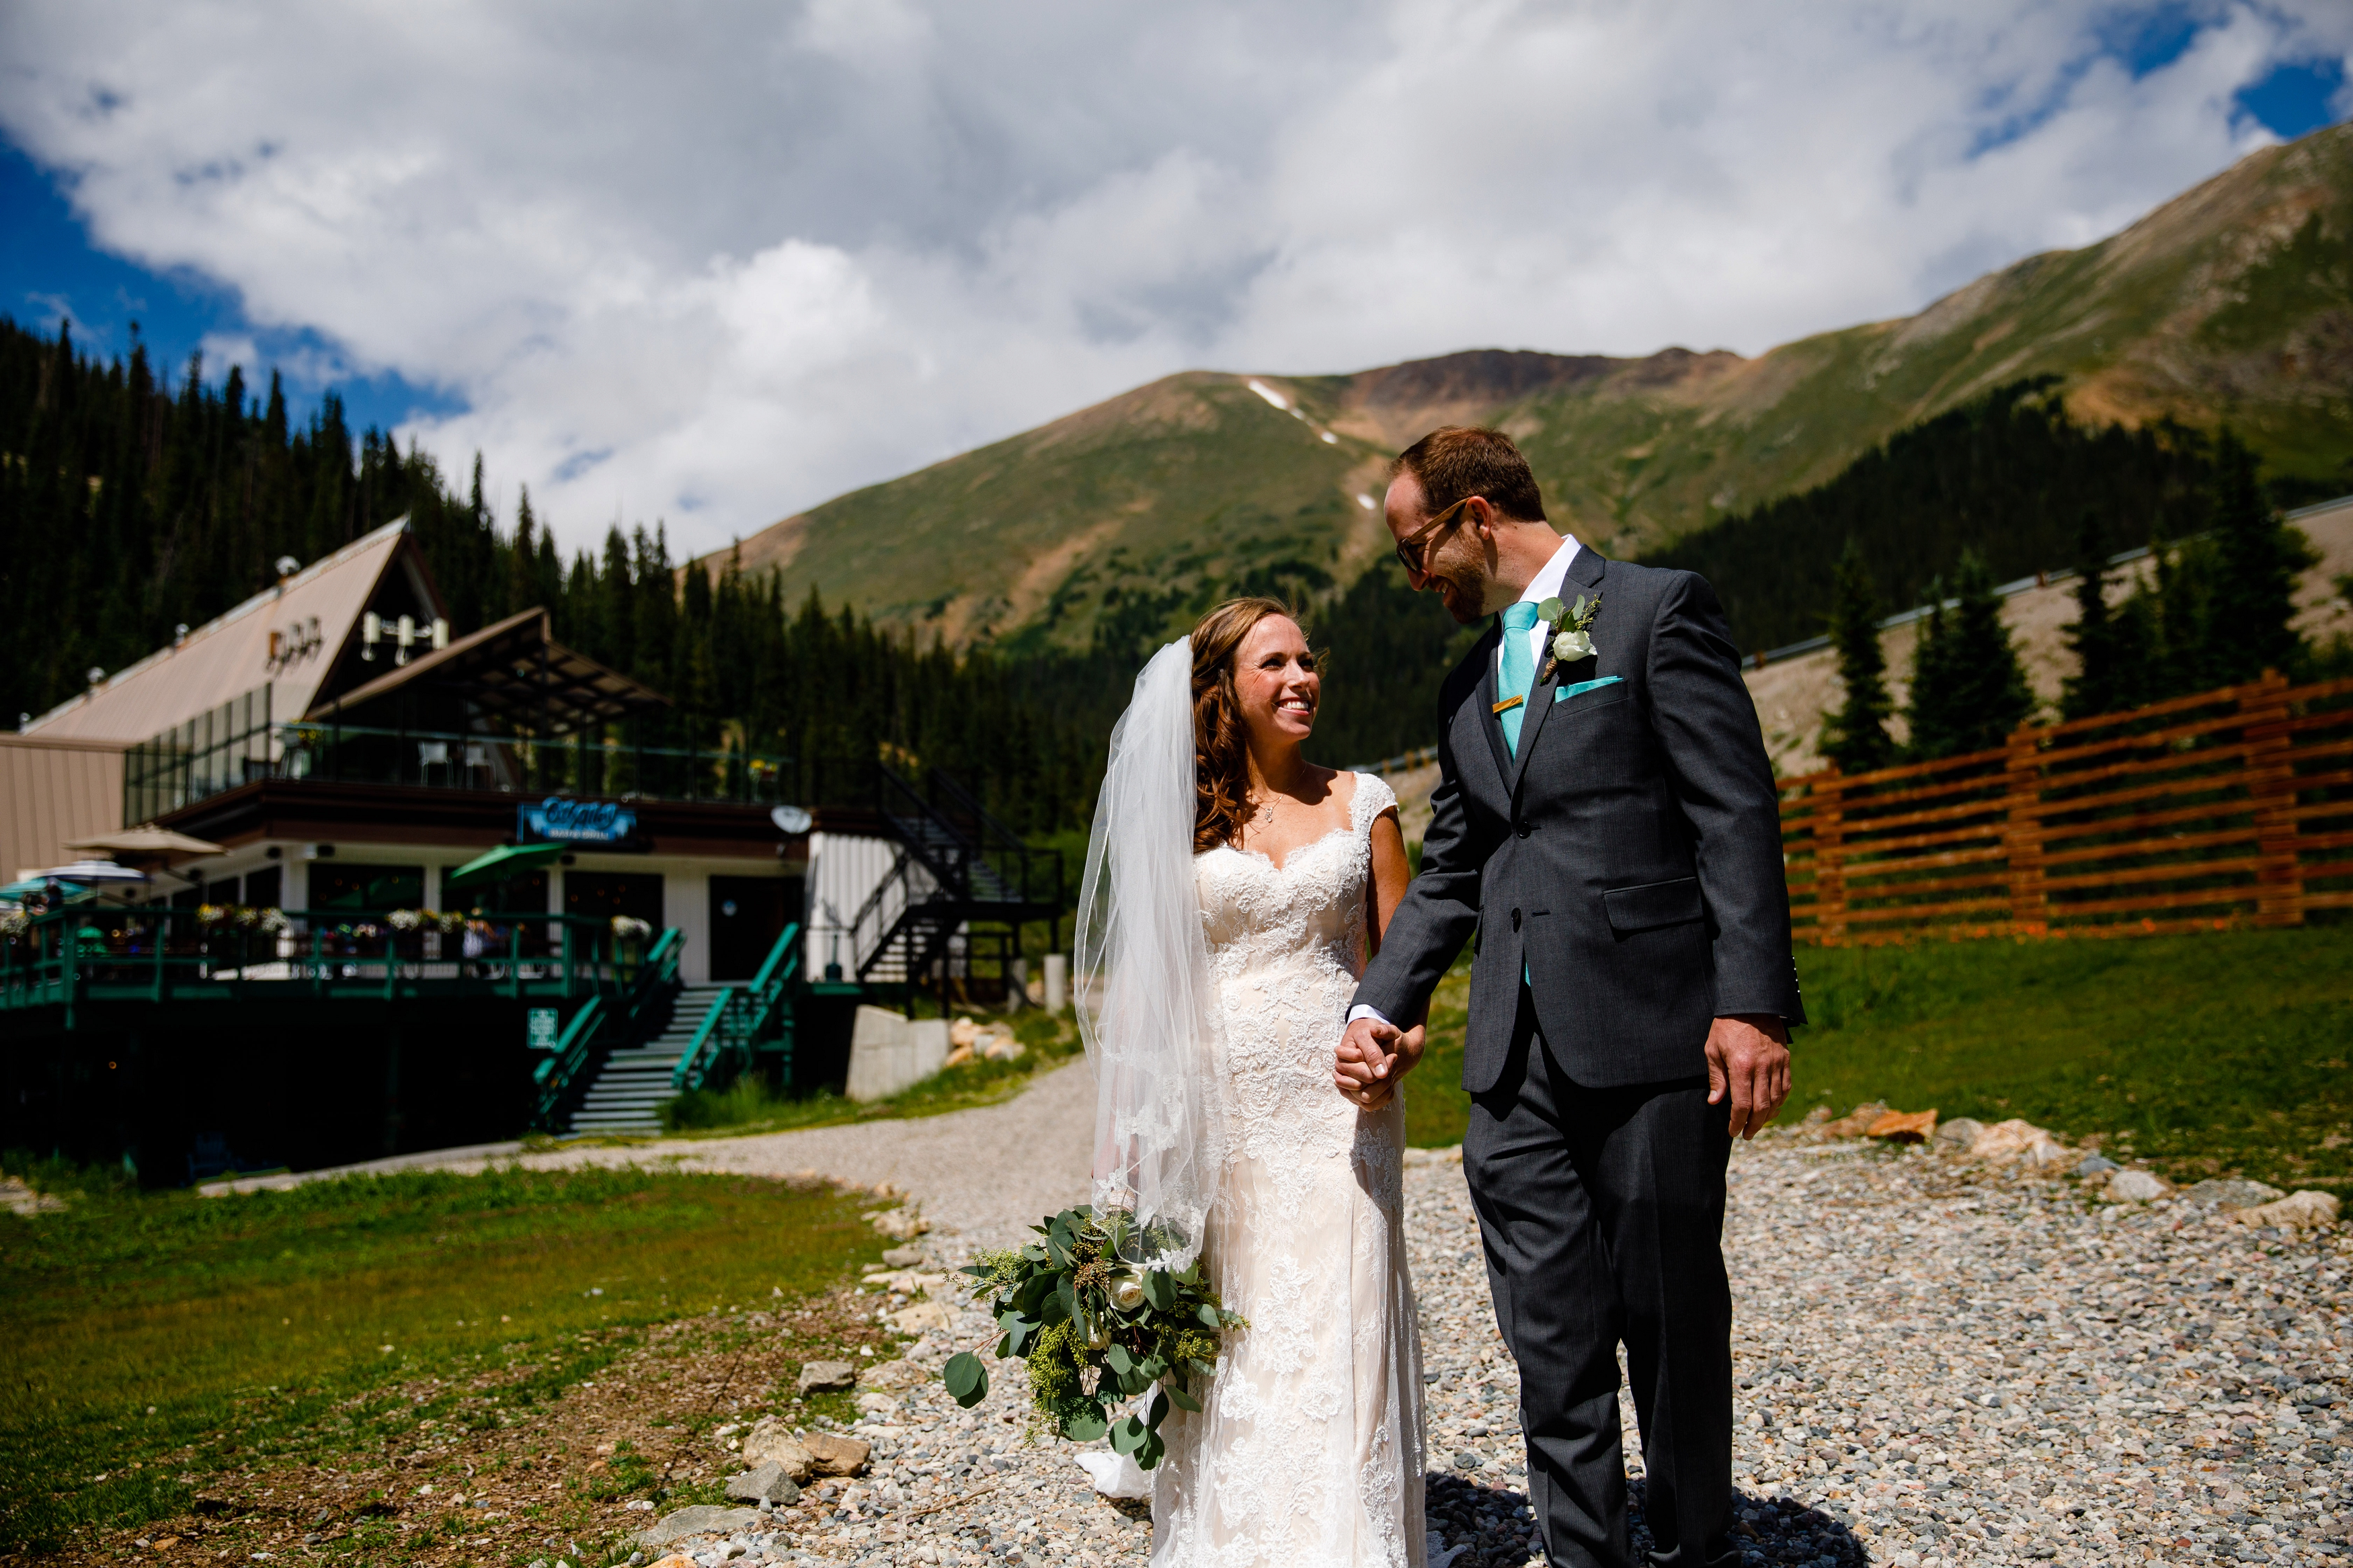 Married couple walking the ski runs at Arapahoe Basin before their wedding.